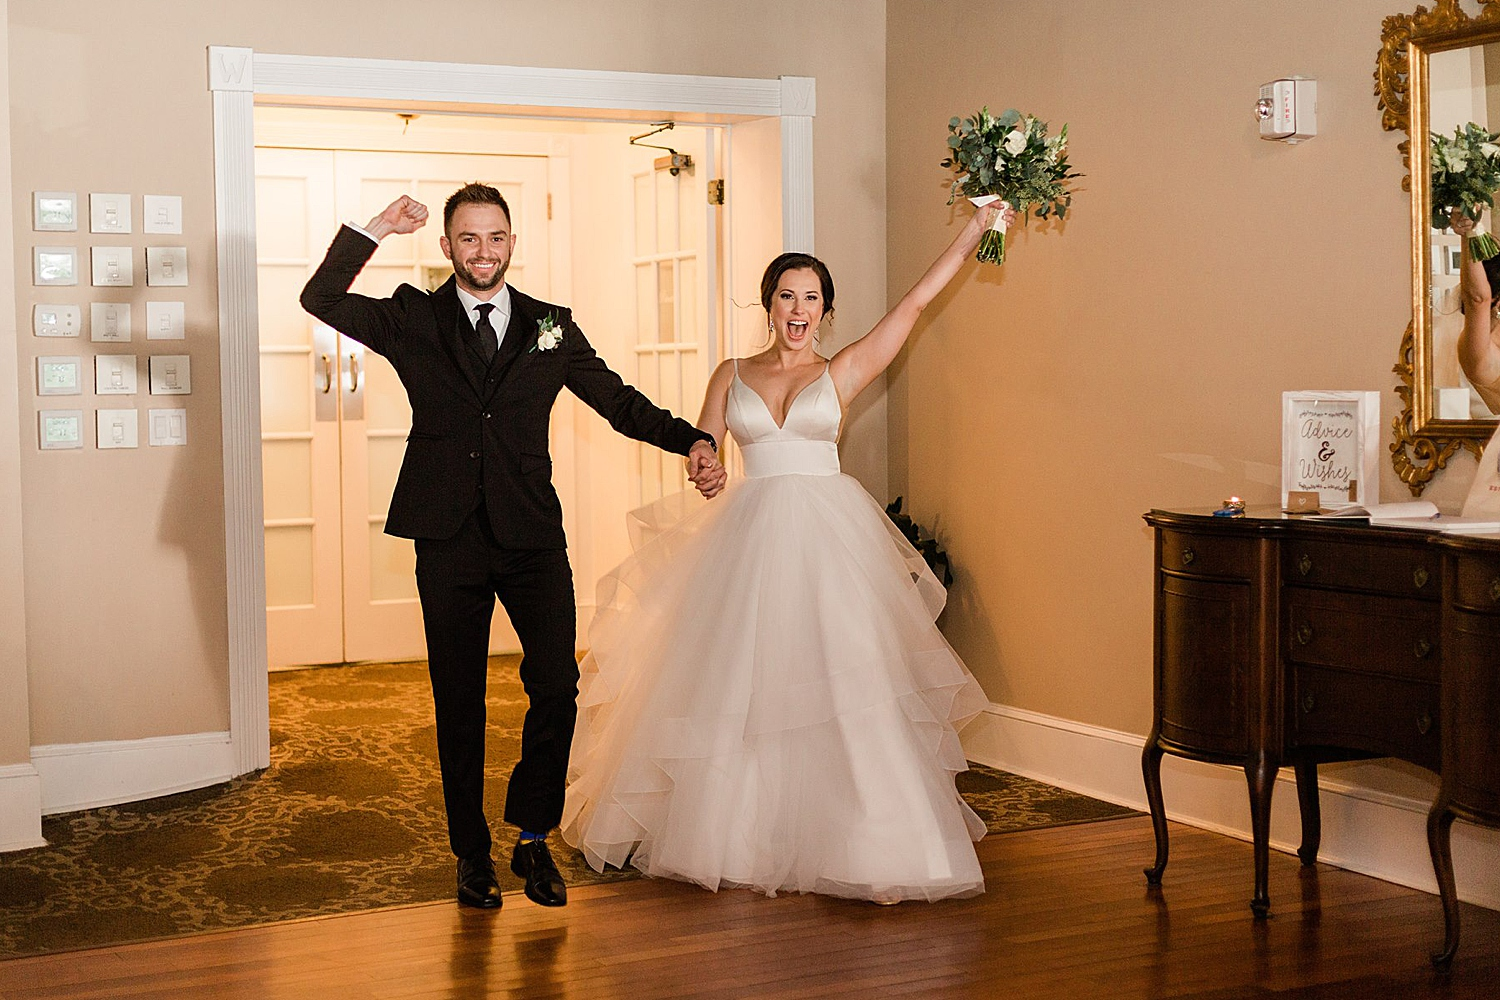 bride and groom celebrate while entering their wedding reception